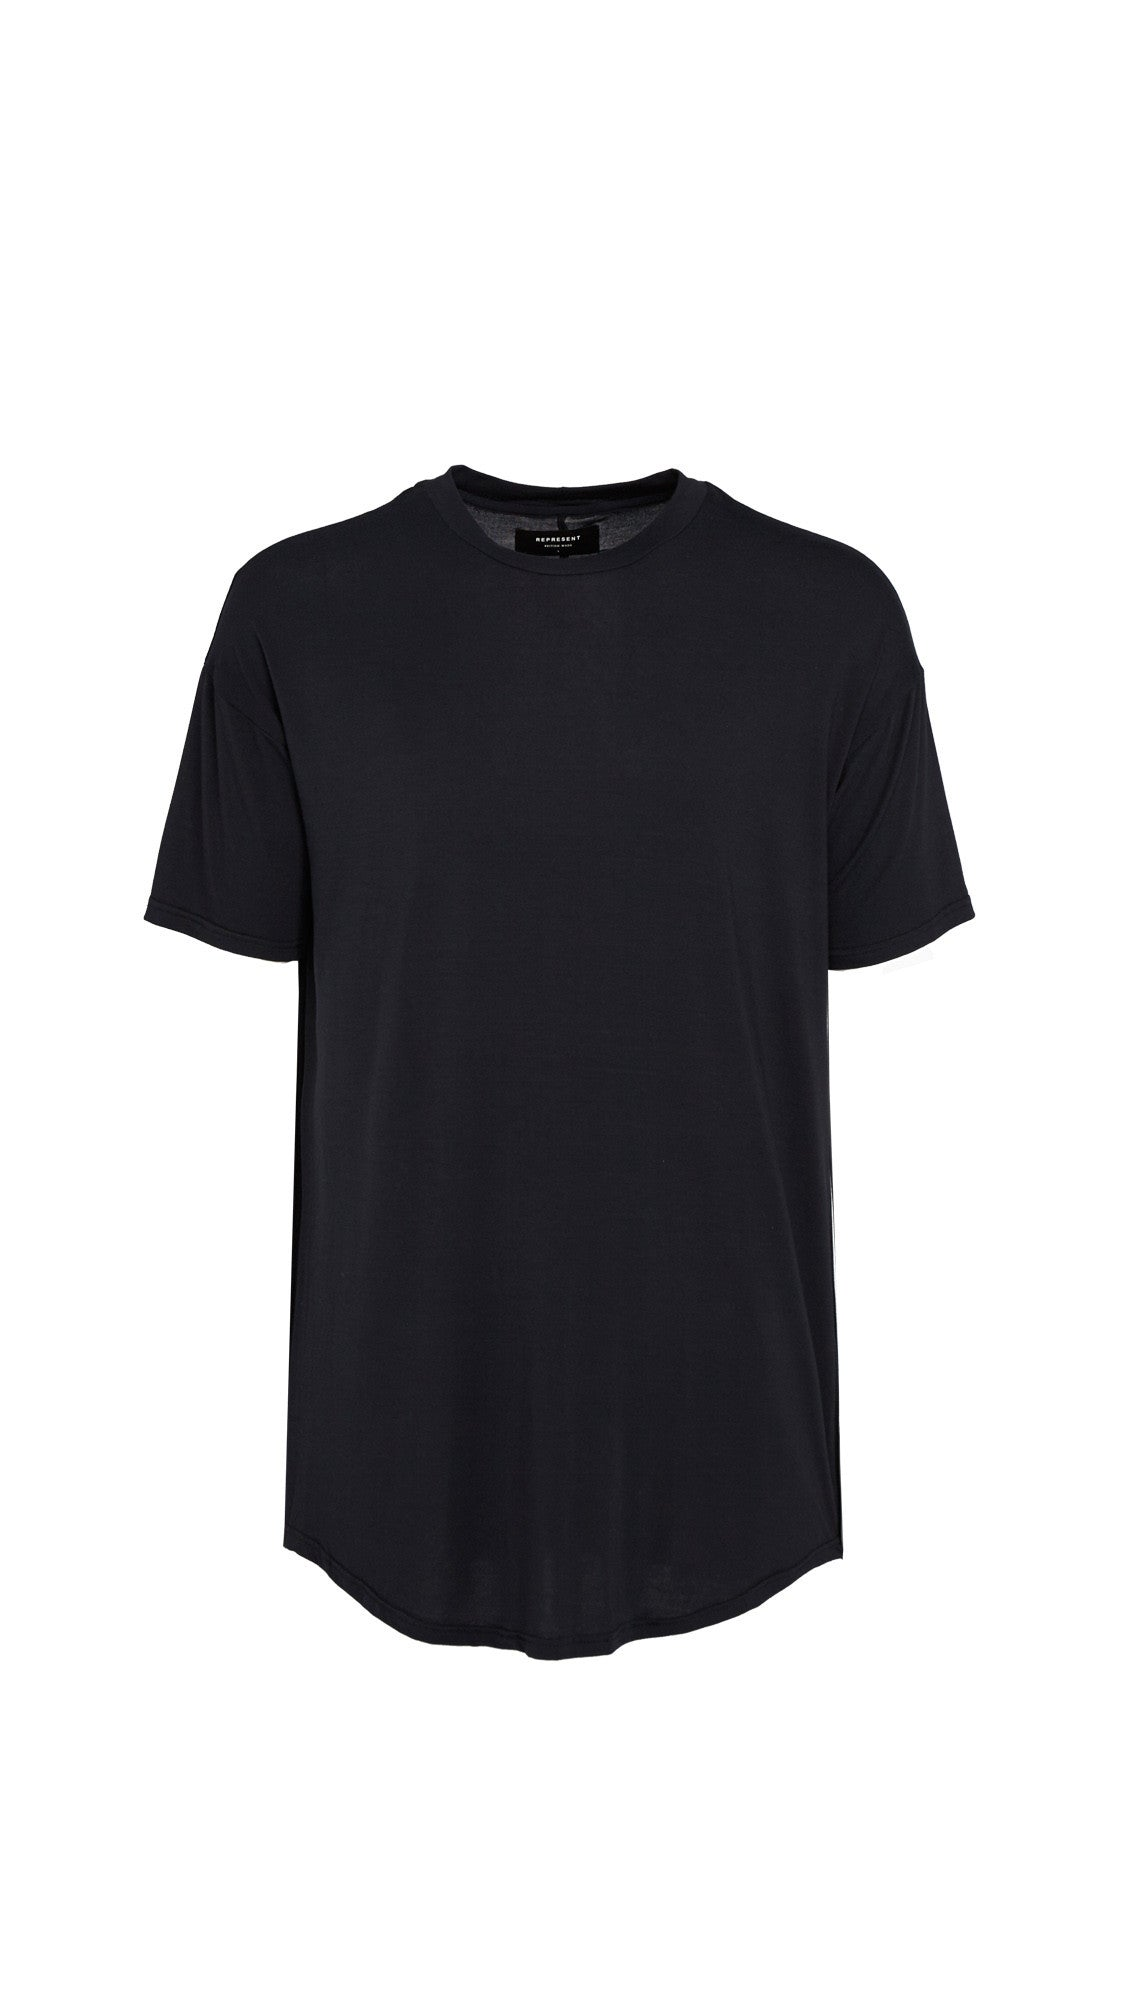 Essential Scooped T-shirt - Black